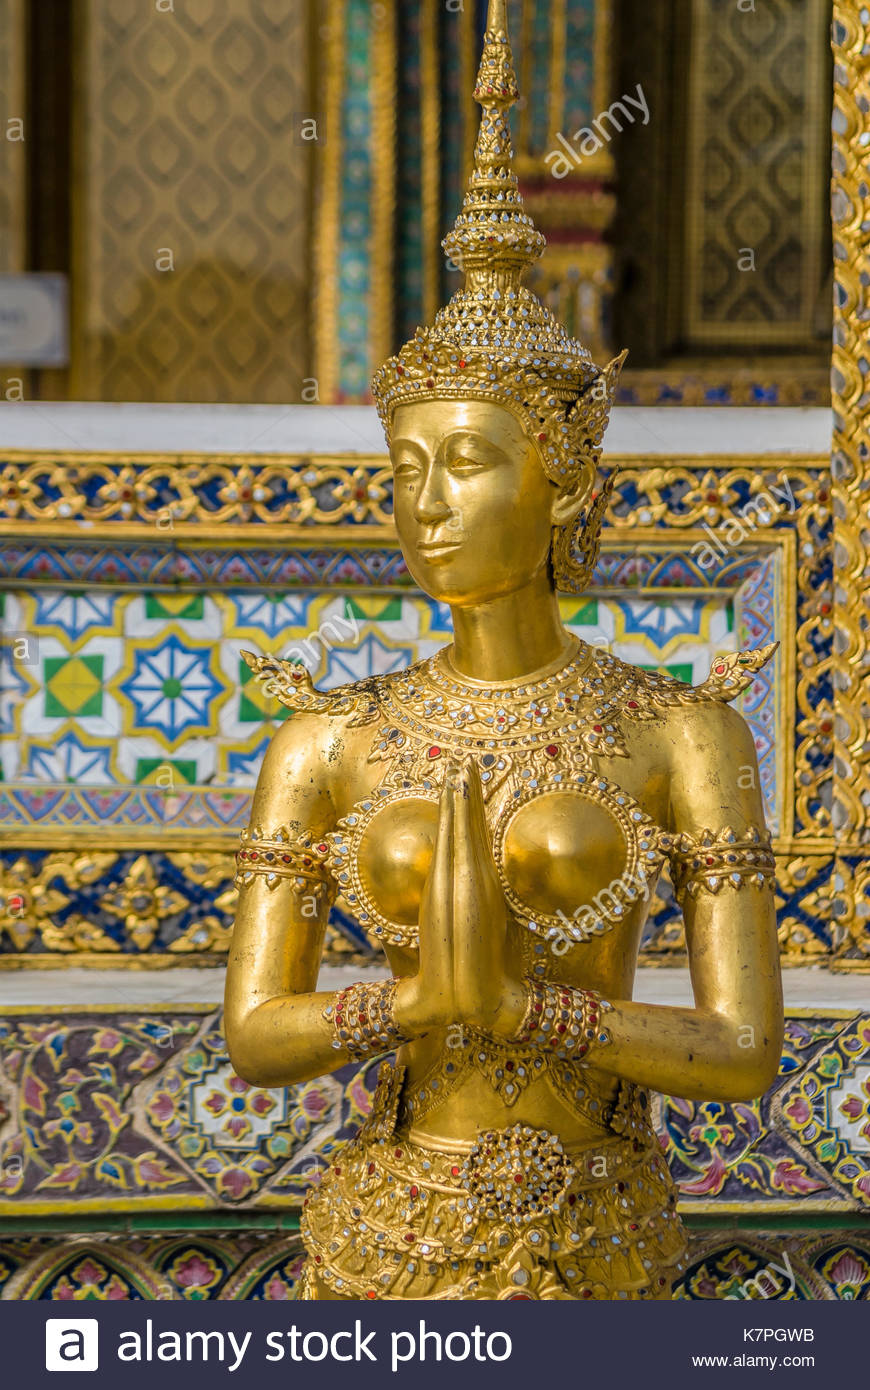 Golden Thai Kinnaree Sculpture, half human half bird,at the Grand Palace, Thailand | Goldene Thai Skulptur im Grand Palace, Thailand - Stock Image